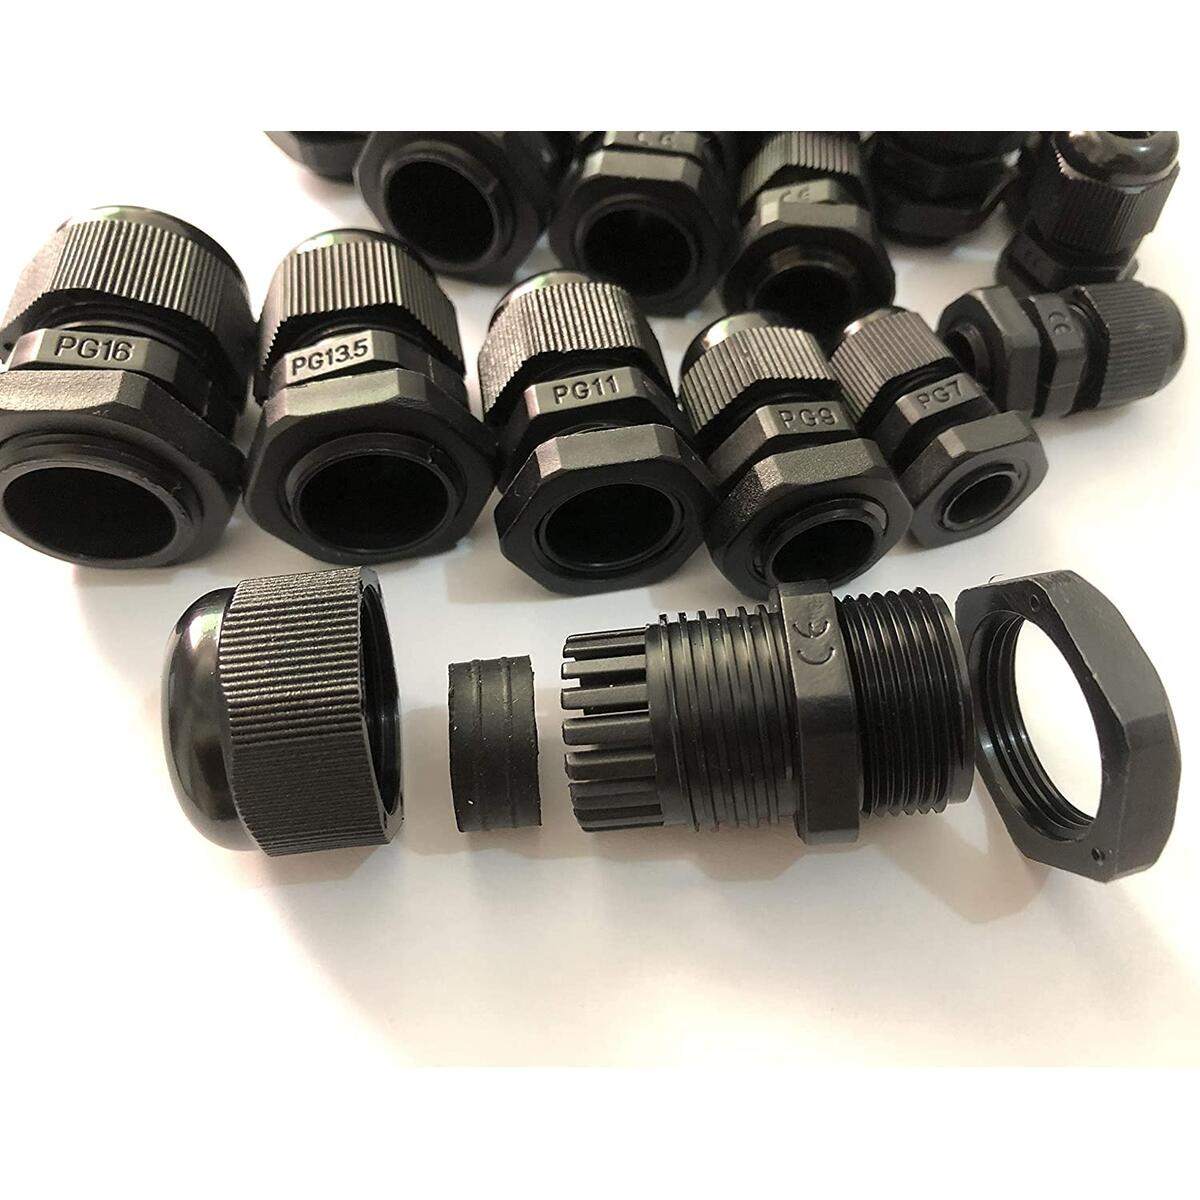 20pcs Cable Gland Waterproof Adjustable 3-13mm Cable Connectors PG7 PG9 PG11 PG13.5 PG16 Plastic Cable Gland Joints Wire Protectors